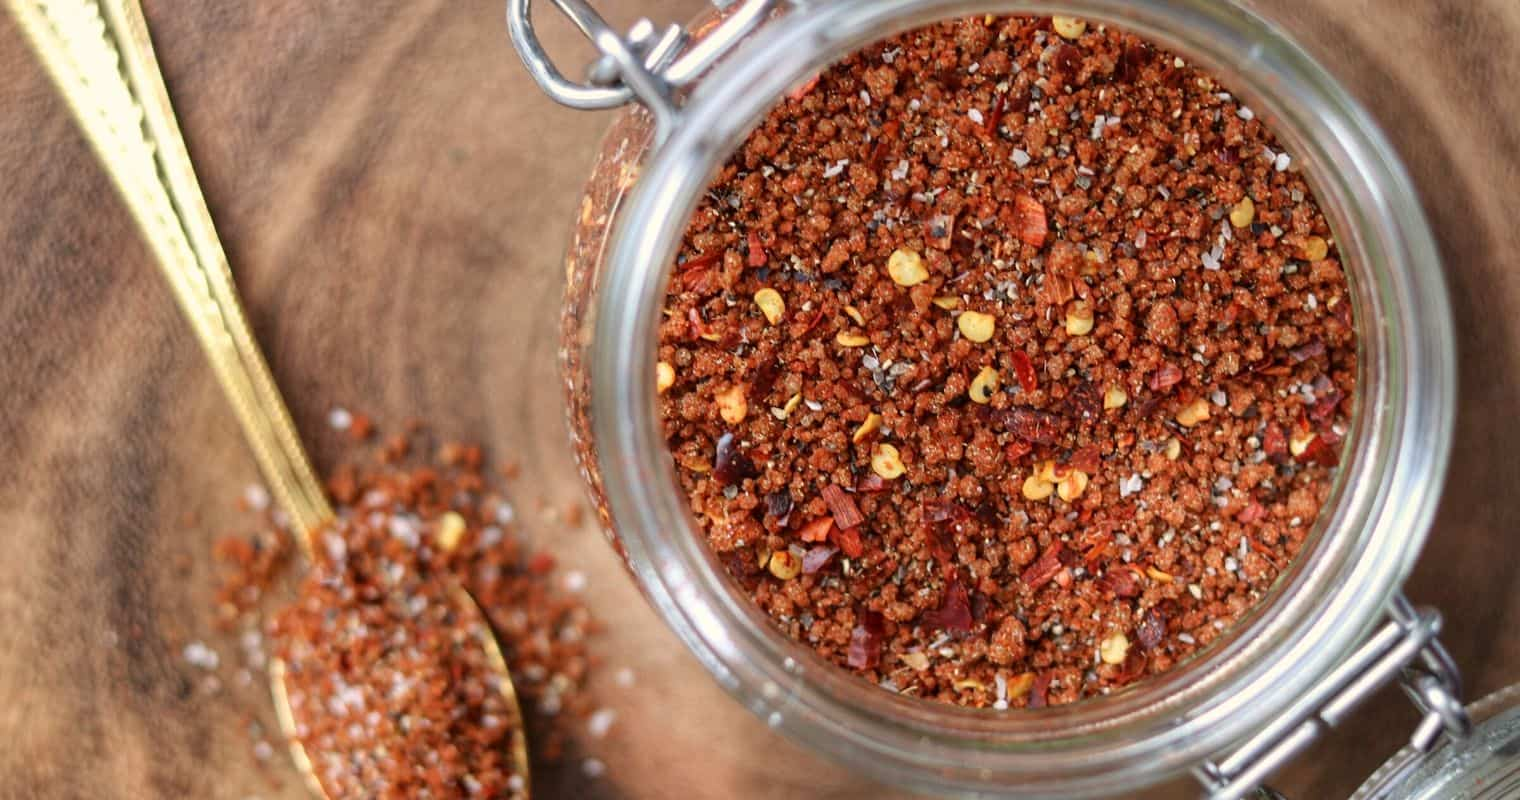 homemade breakfast sausage seasoning in a glass jar